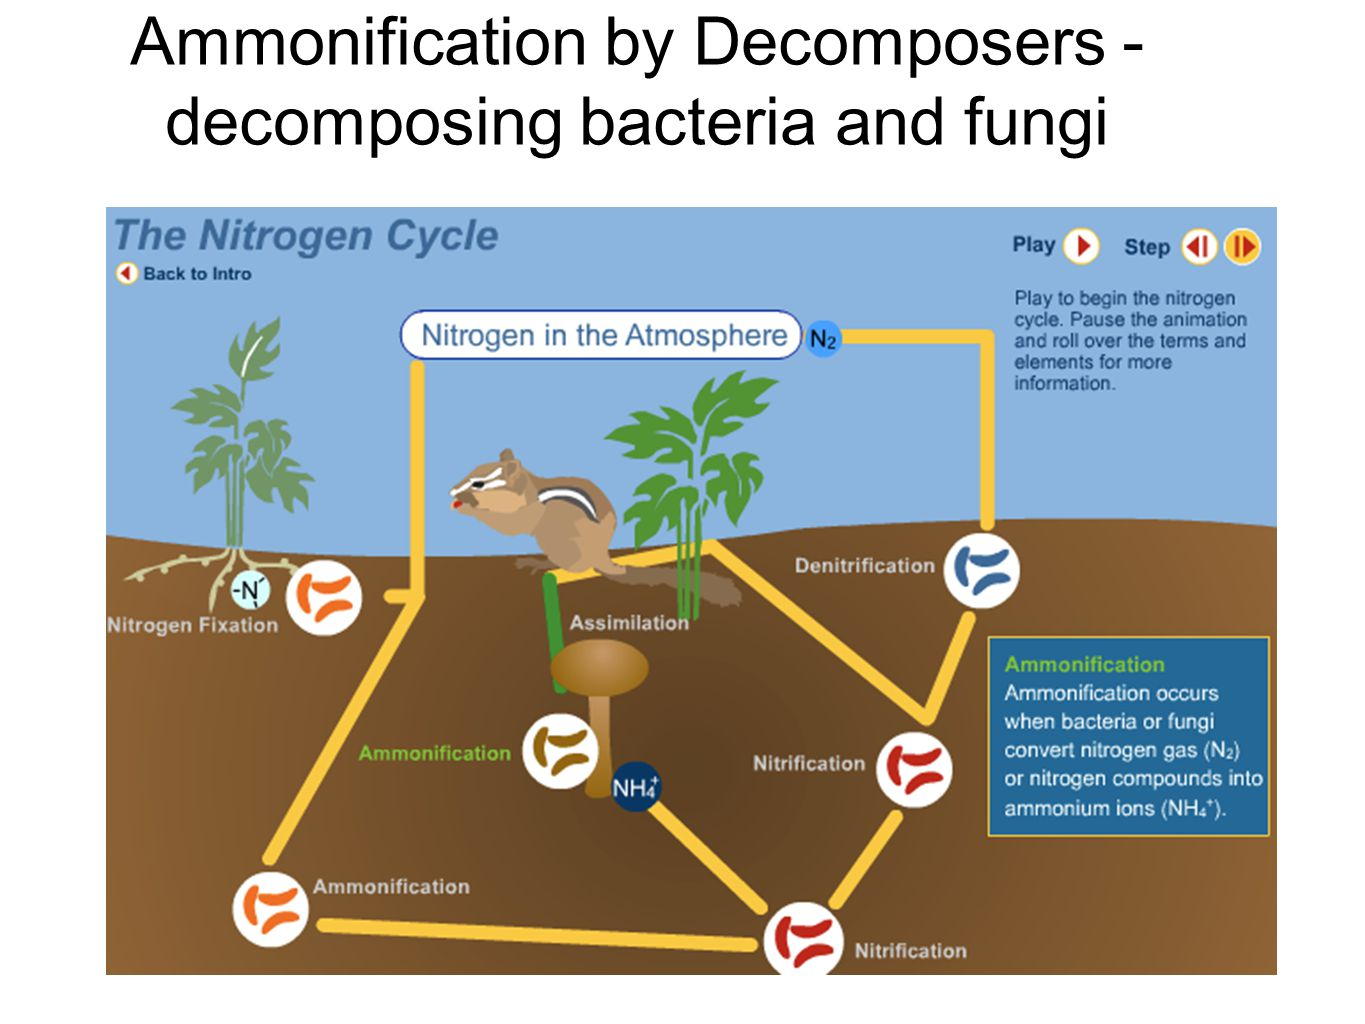 Ammonification by Decomposers - decomposing bacteria and fungi